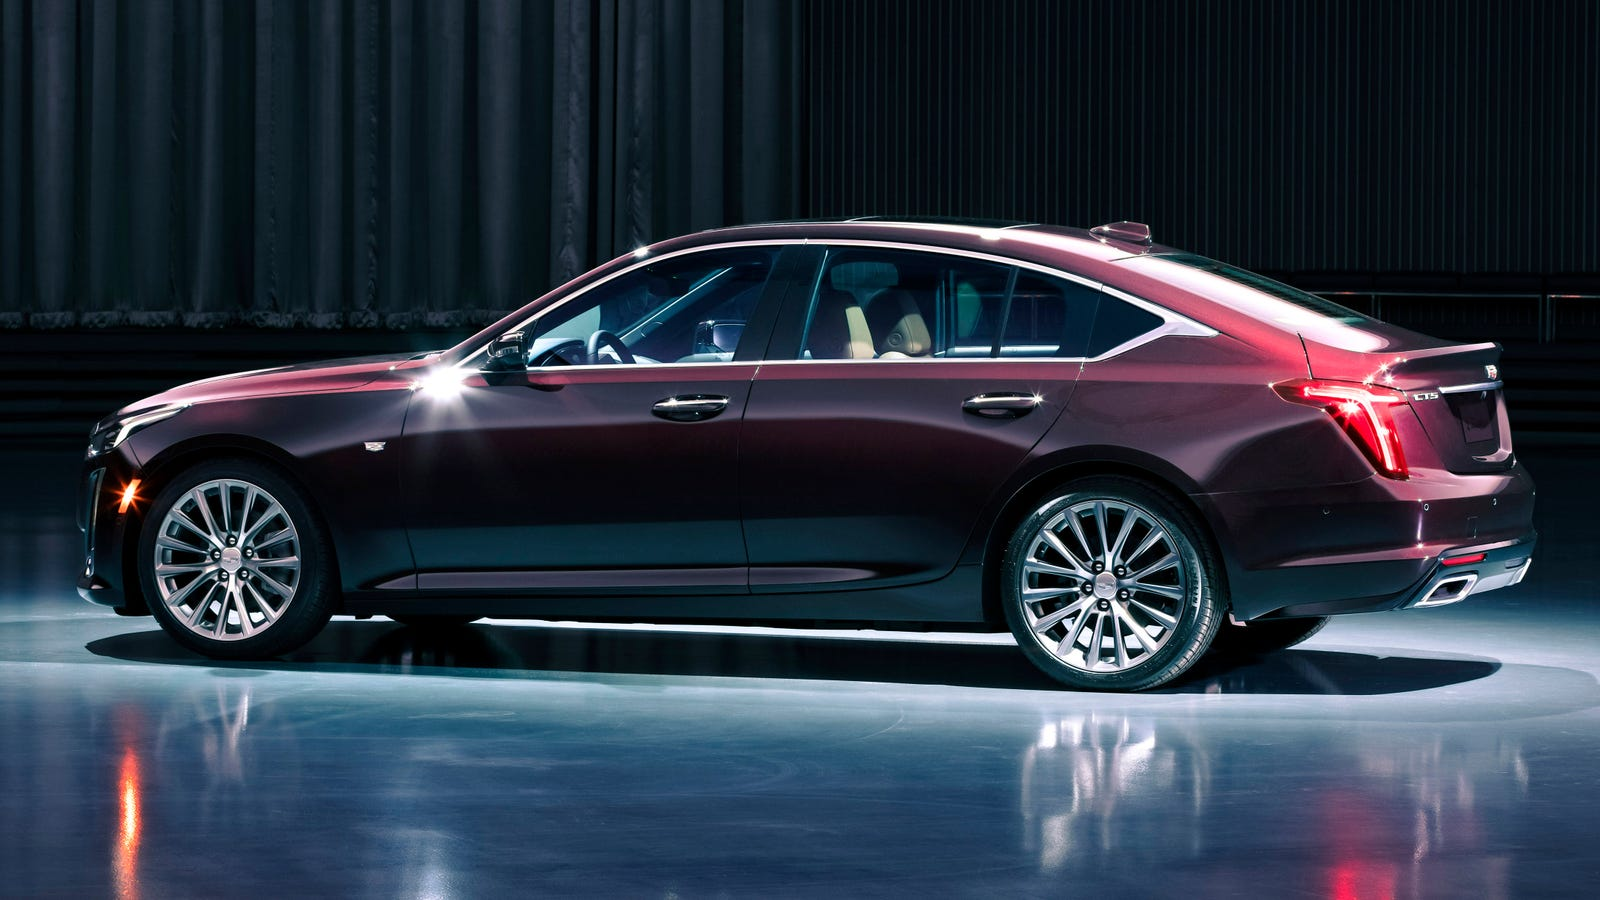 2020 Cadillac CT5: How It Compares in Size and Tech to the CTS